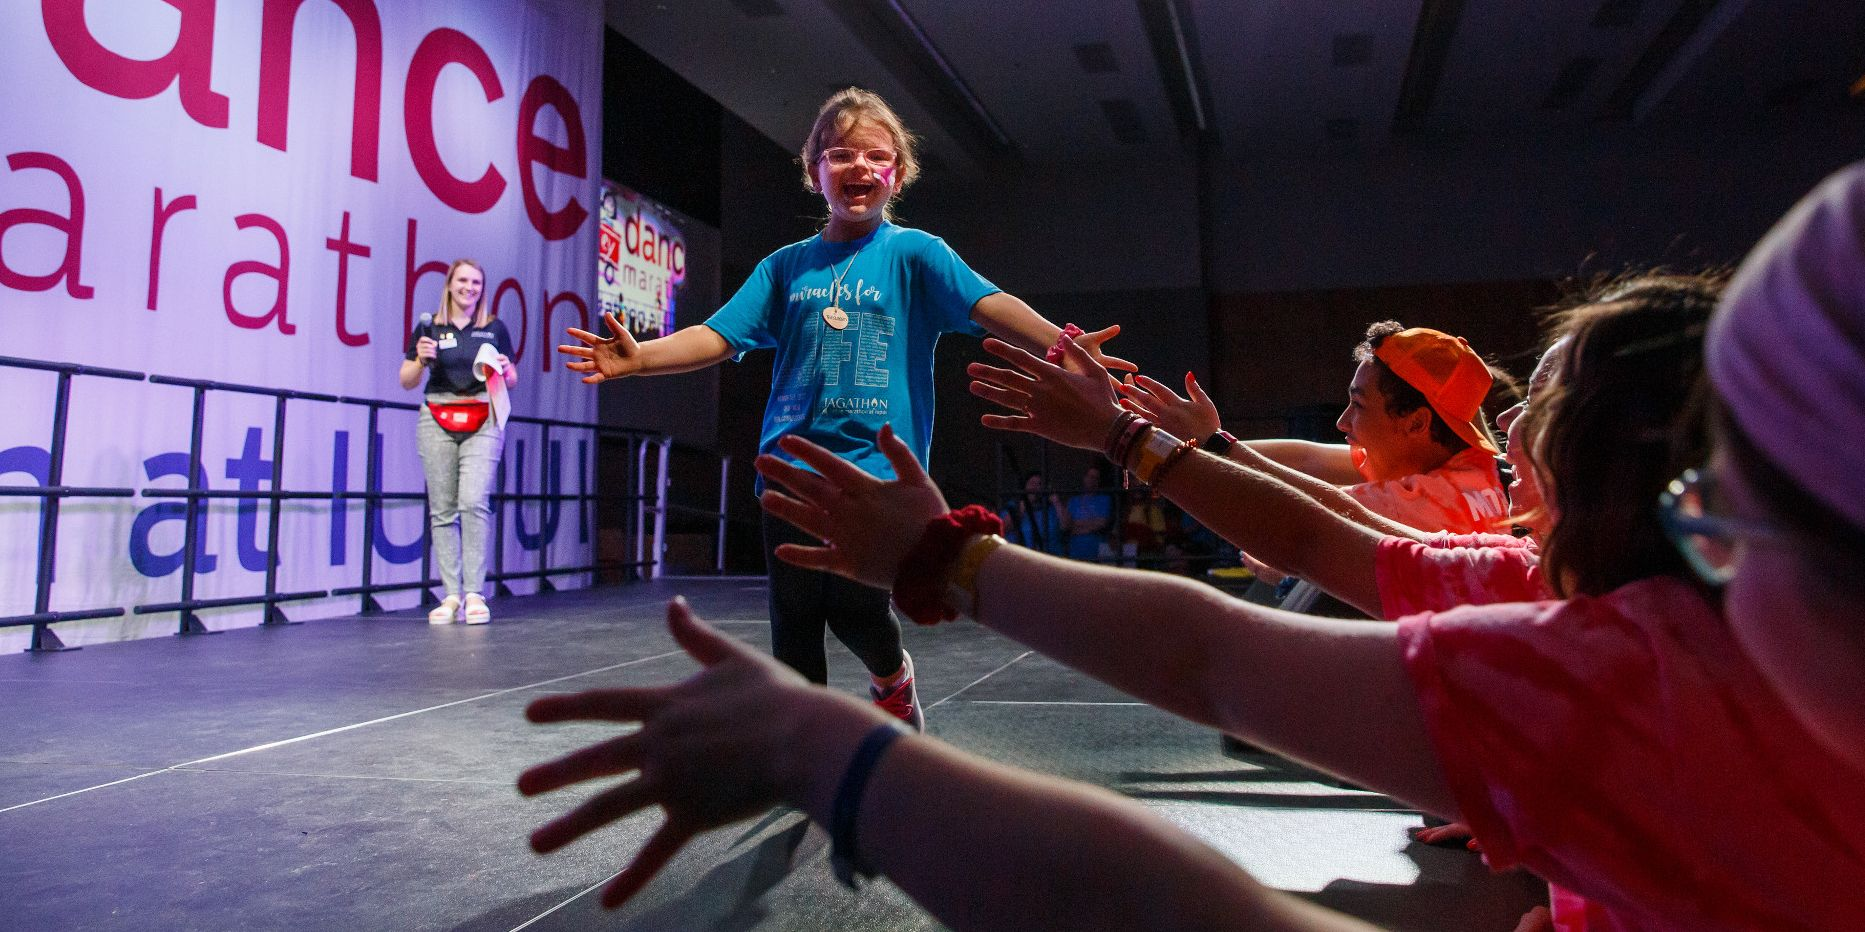 A kid runs across the stage and high-fives people in the crowd at Jagathon